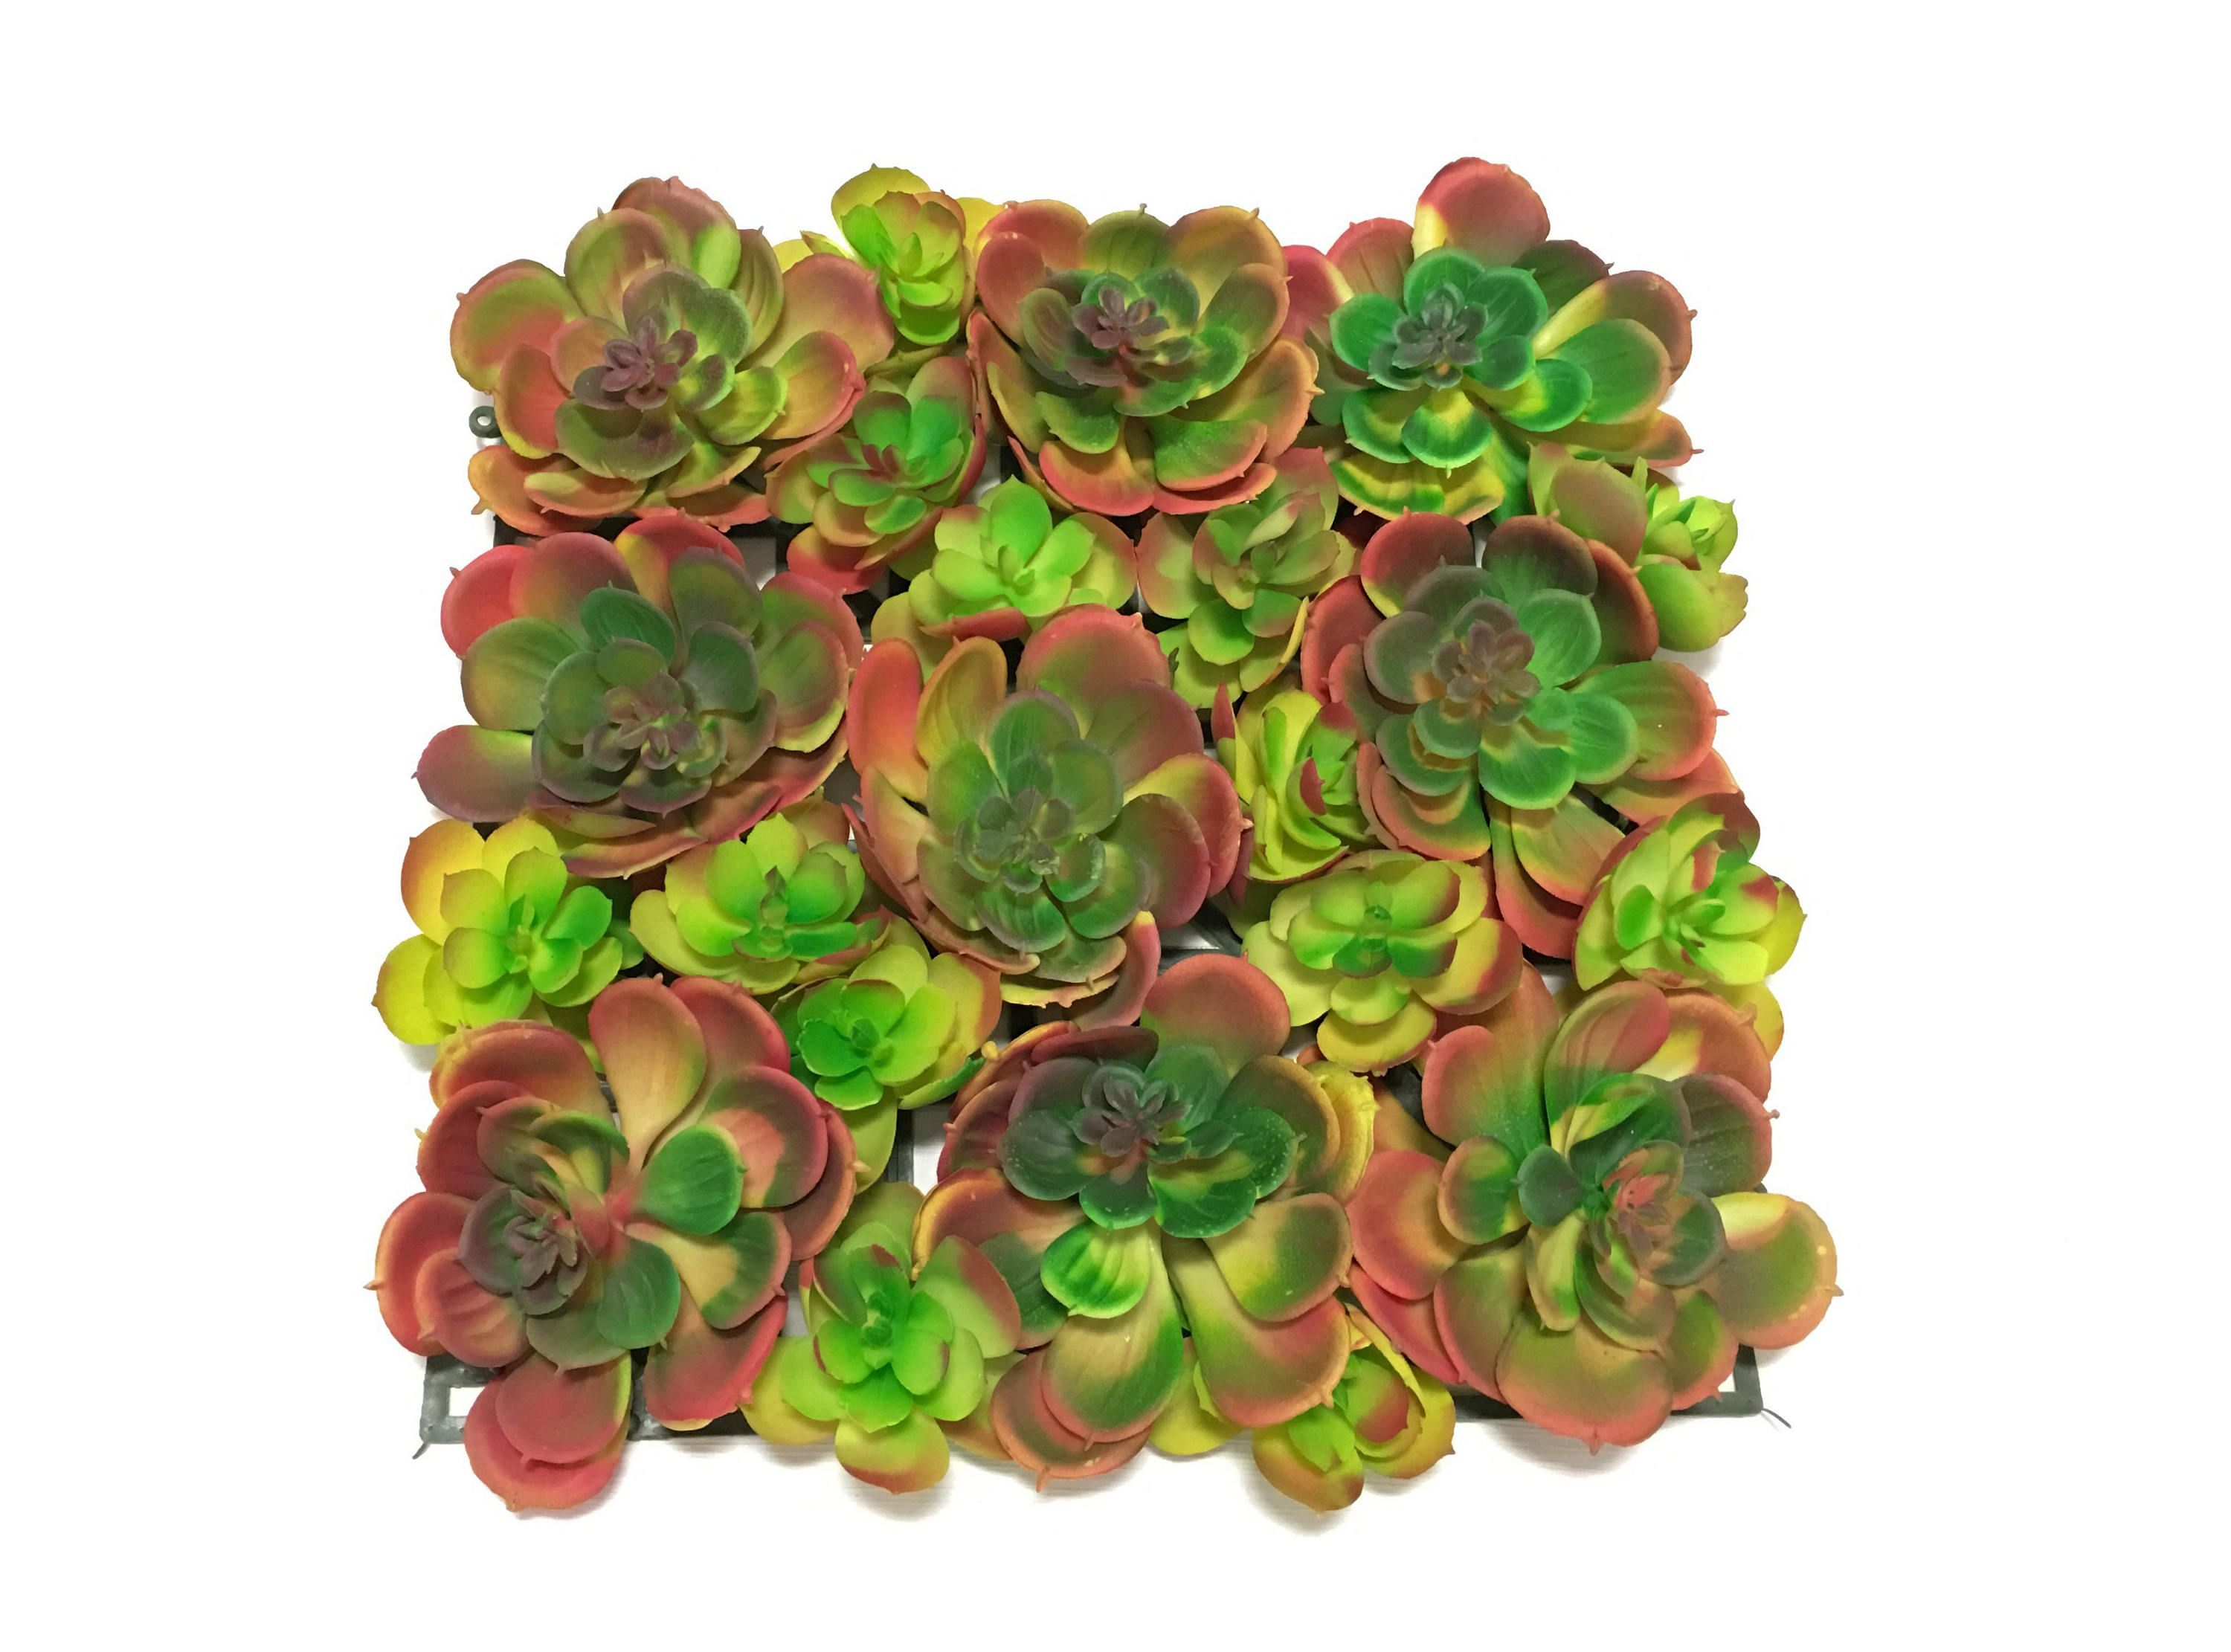 Large artificial succulent mat artificial flowers flower crown large artificial succulent mat artificial flowers flower crown terrarium fairy garden millinery hair accessory flower arrangement mightylinksfo Gallery